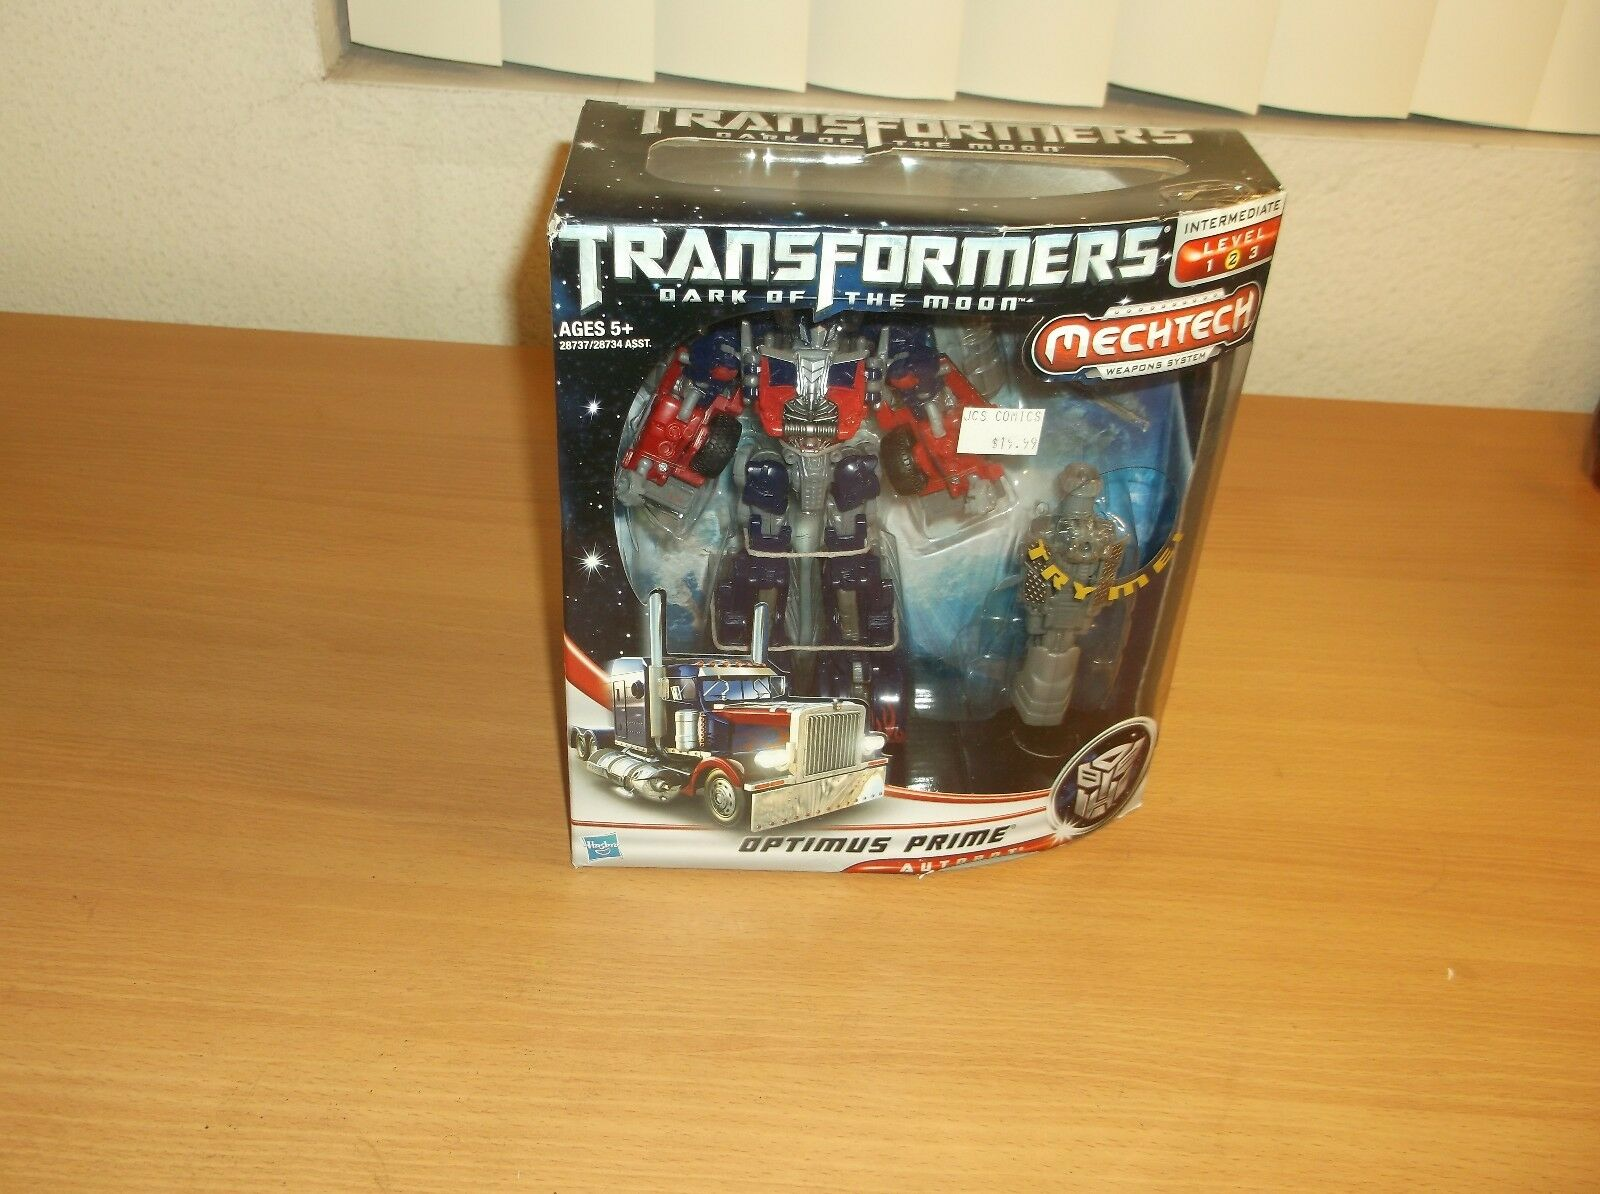 HASBRO  TRANSFORMERS  DOTM  MECHTECH WEAPONS SYSTEM, OPTIMUS PRIME, 2010